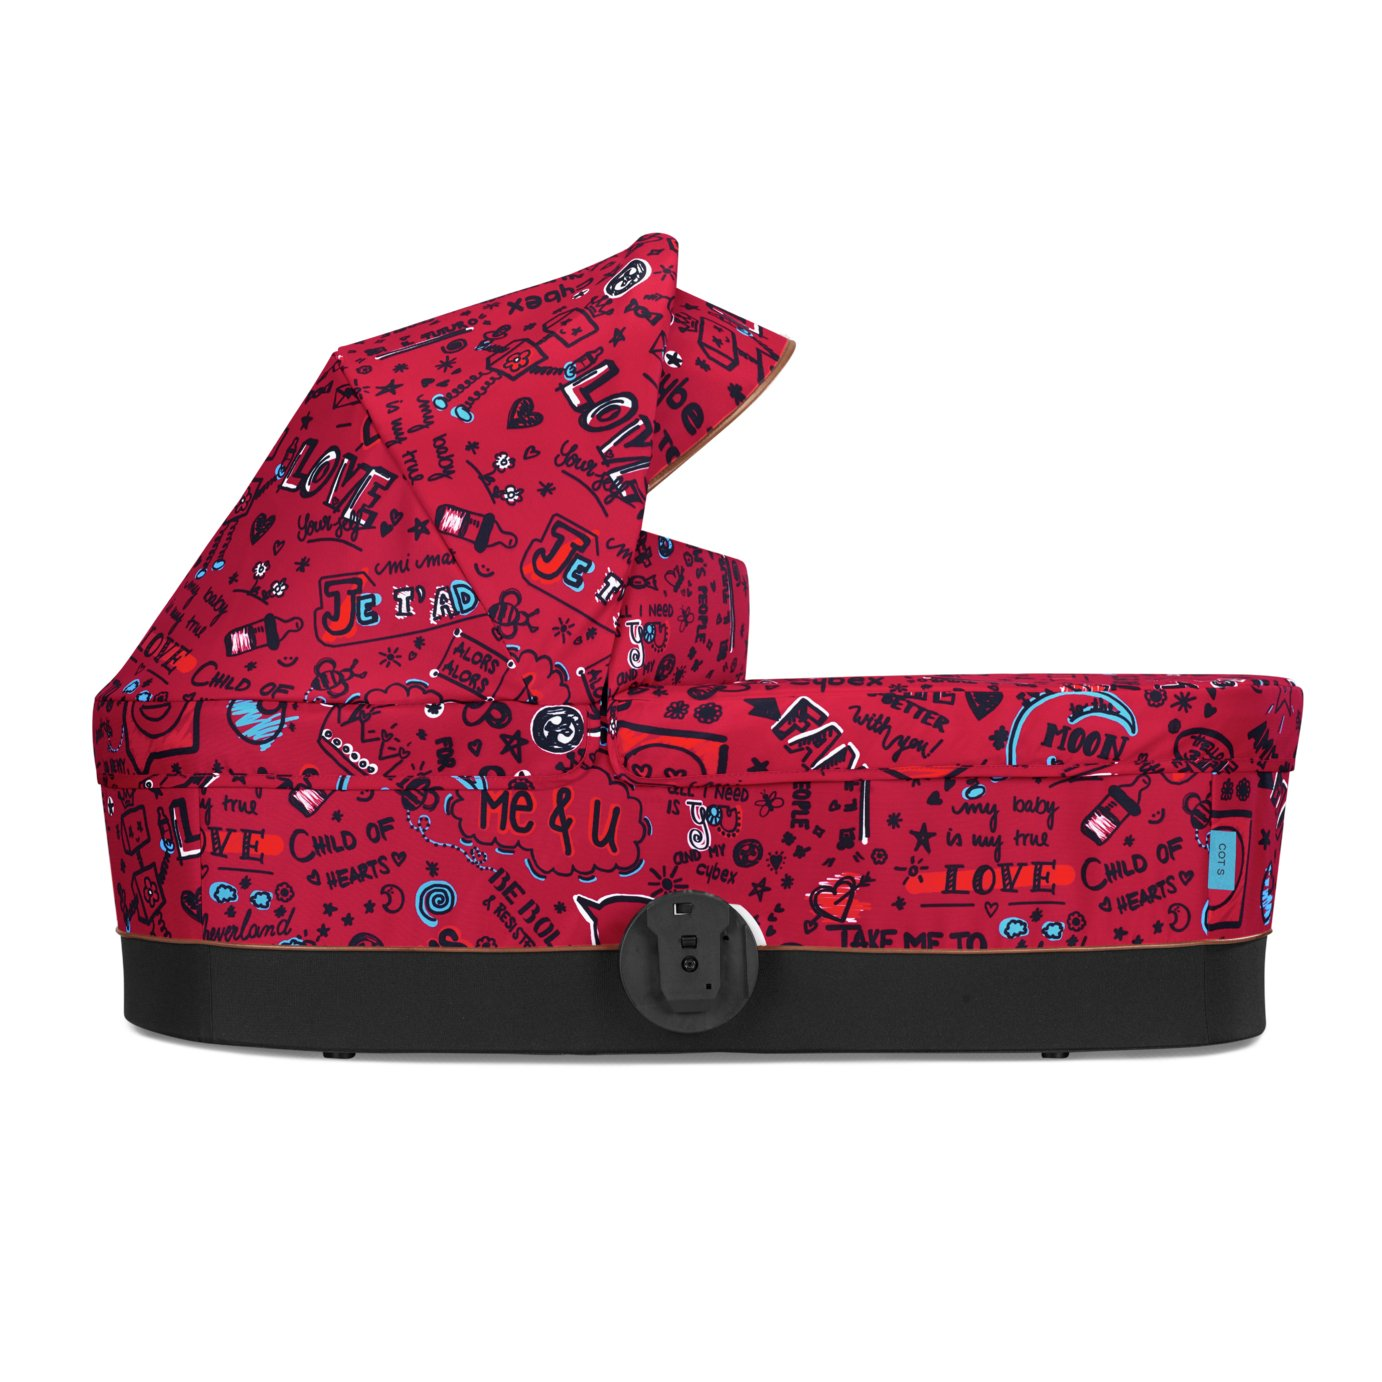 Cybex Cot S Special Edition Carry Cot - Love Red